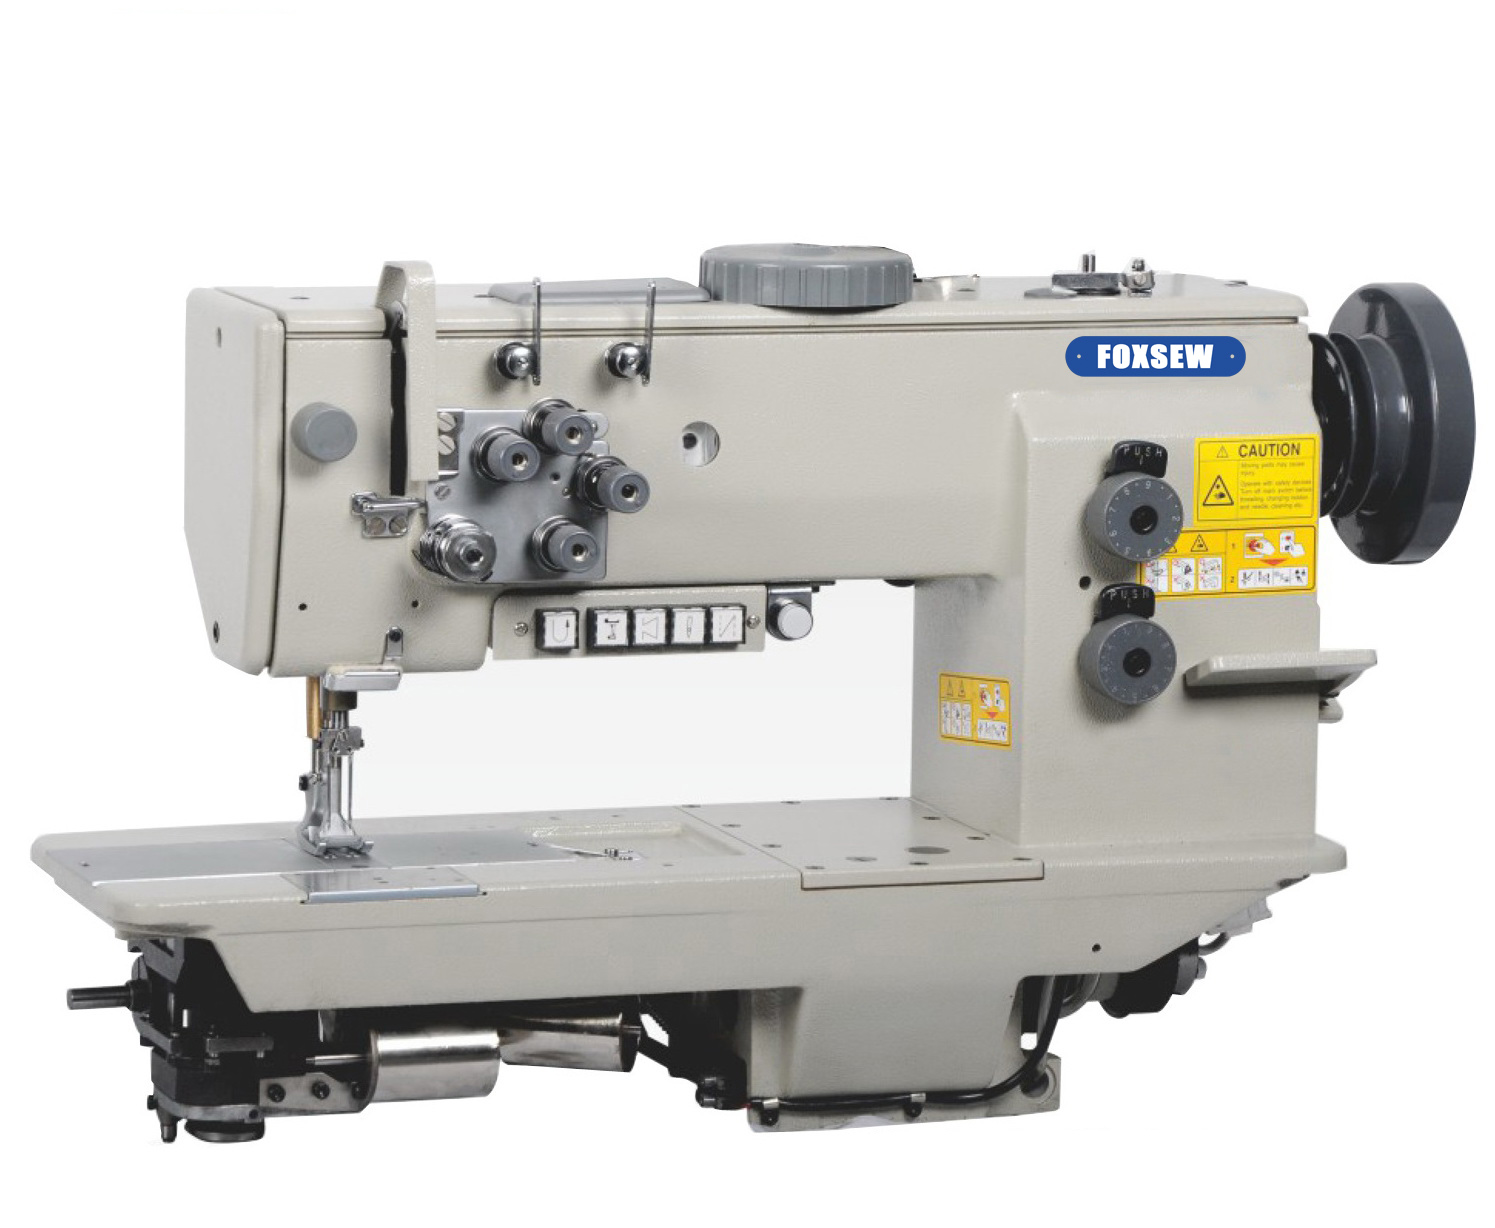 KD-7678 Double Needle Heavy Duty Compound Feed Lockstitch Sewing Machine